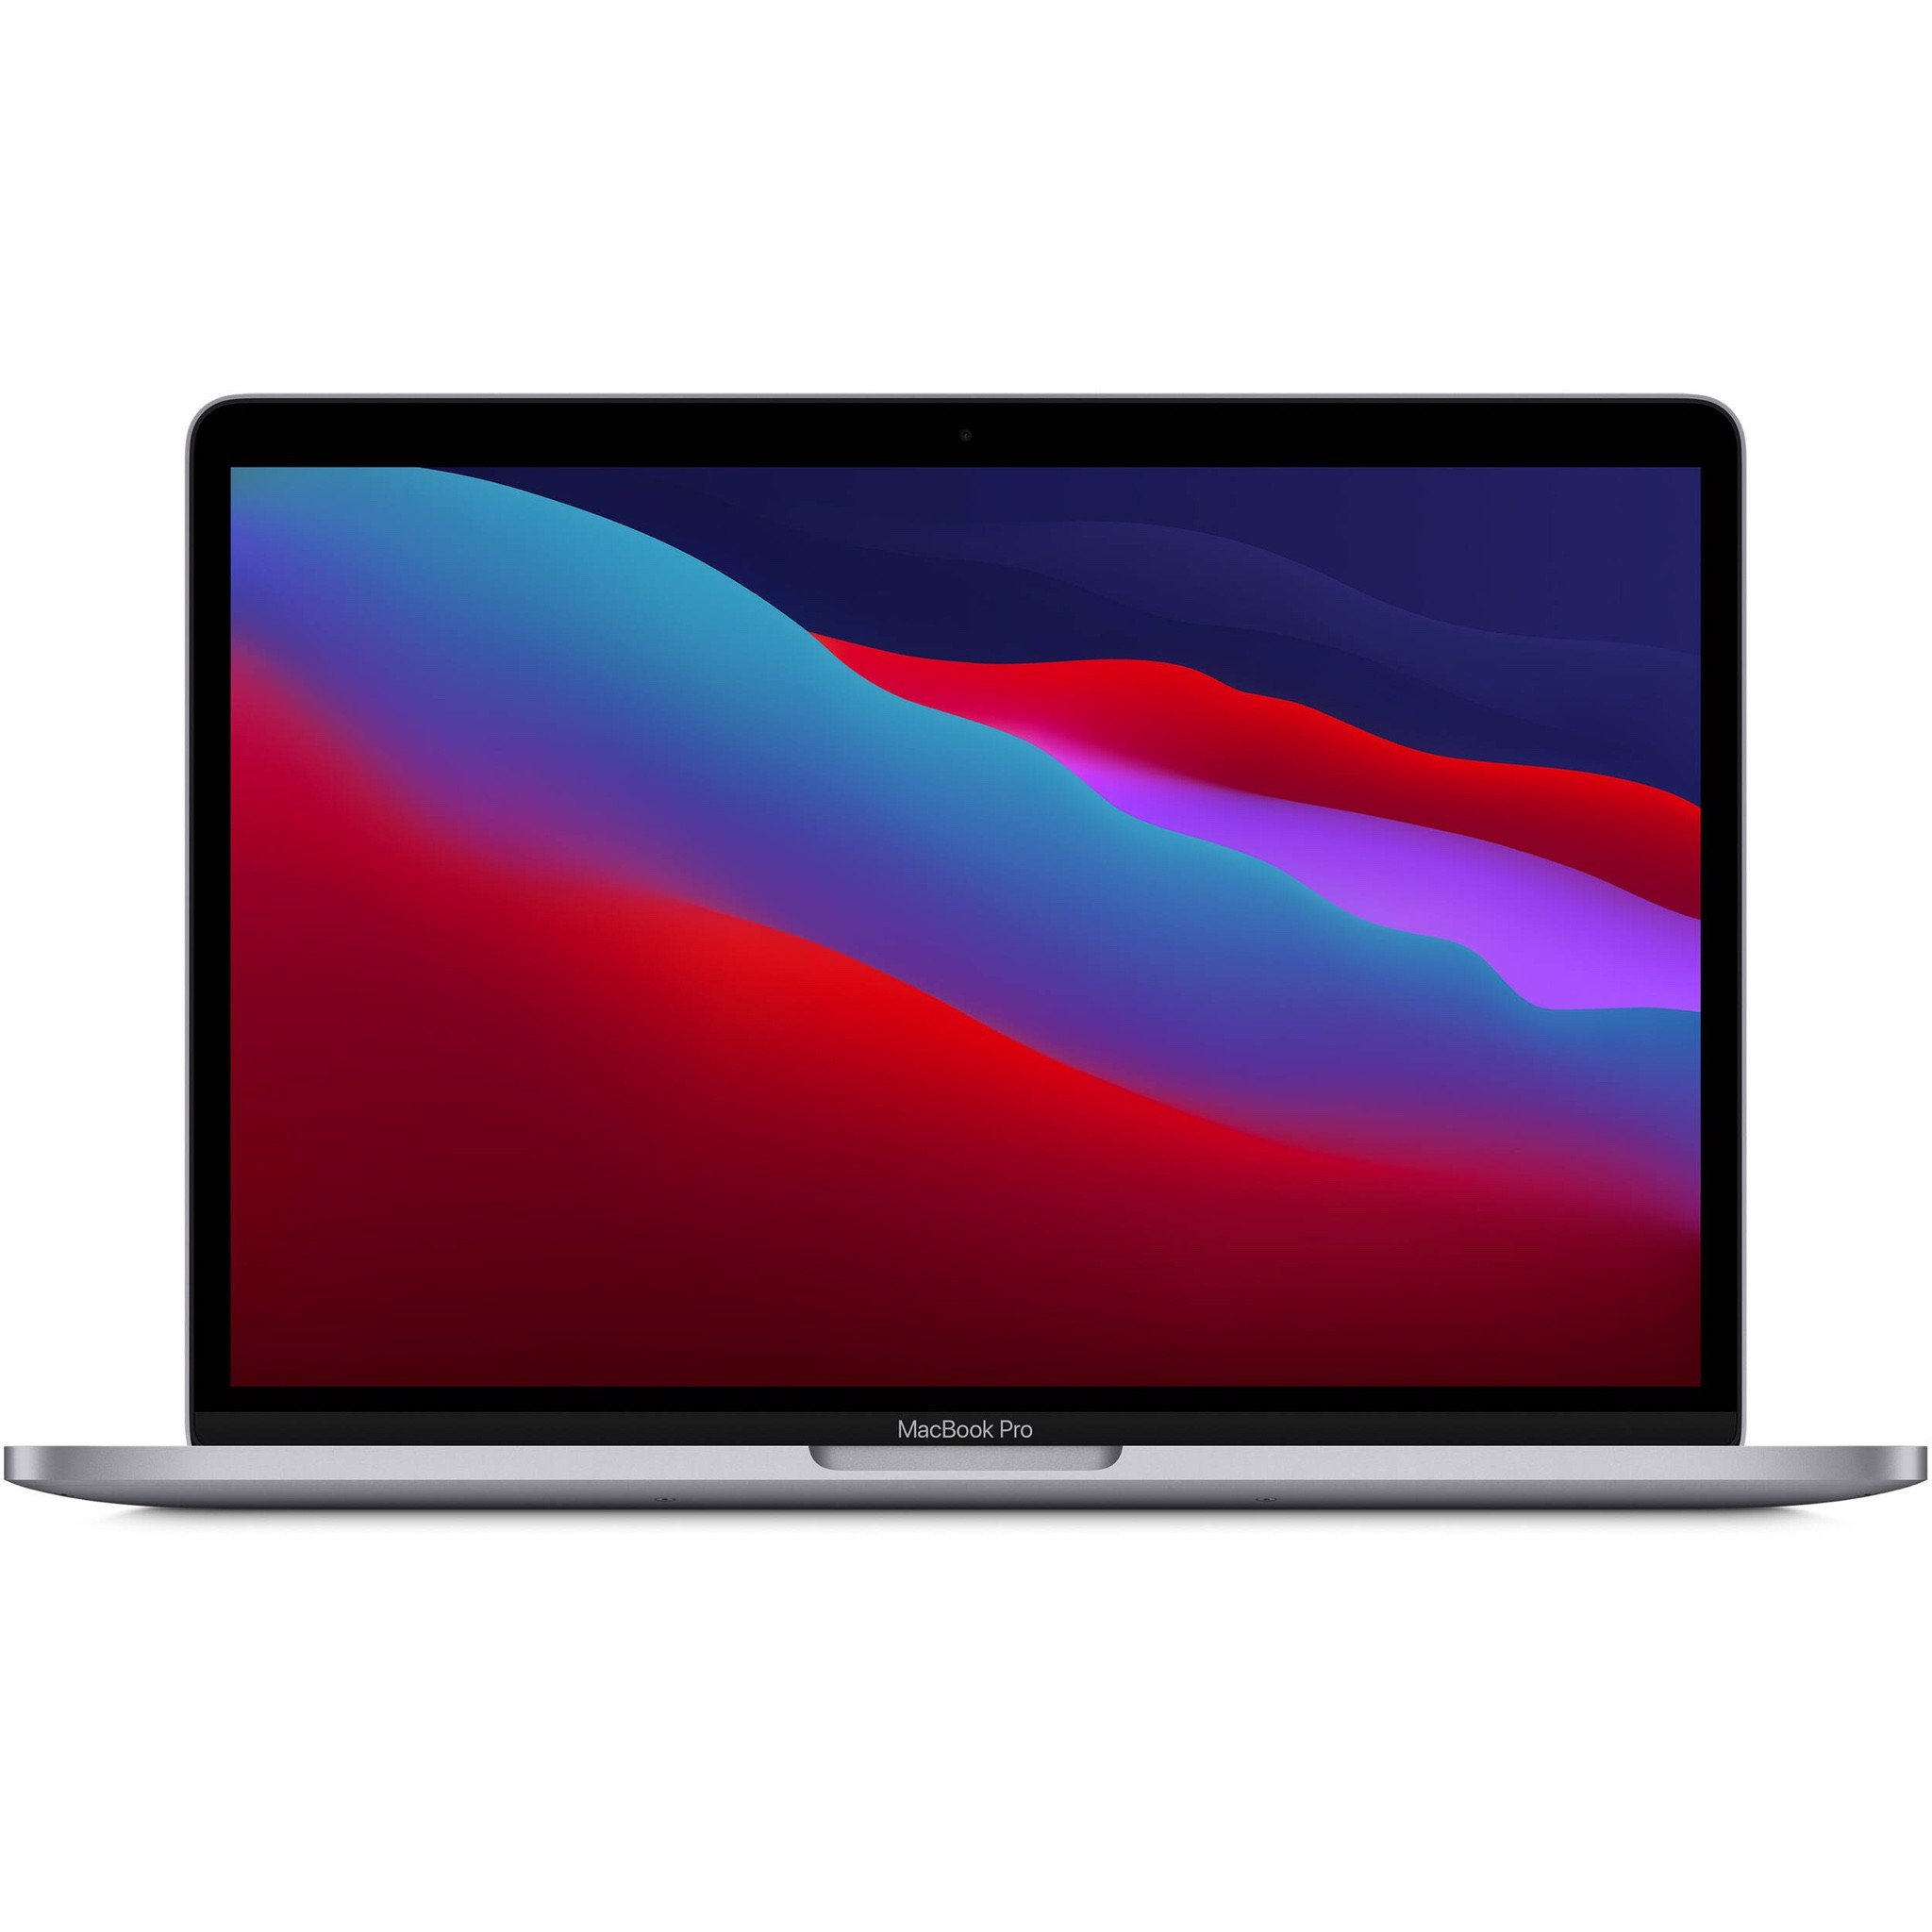 Review Apple Macbook Pro 2020 M1 - 13 Inch (8GB/ 256GB)